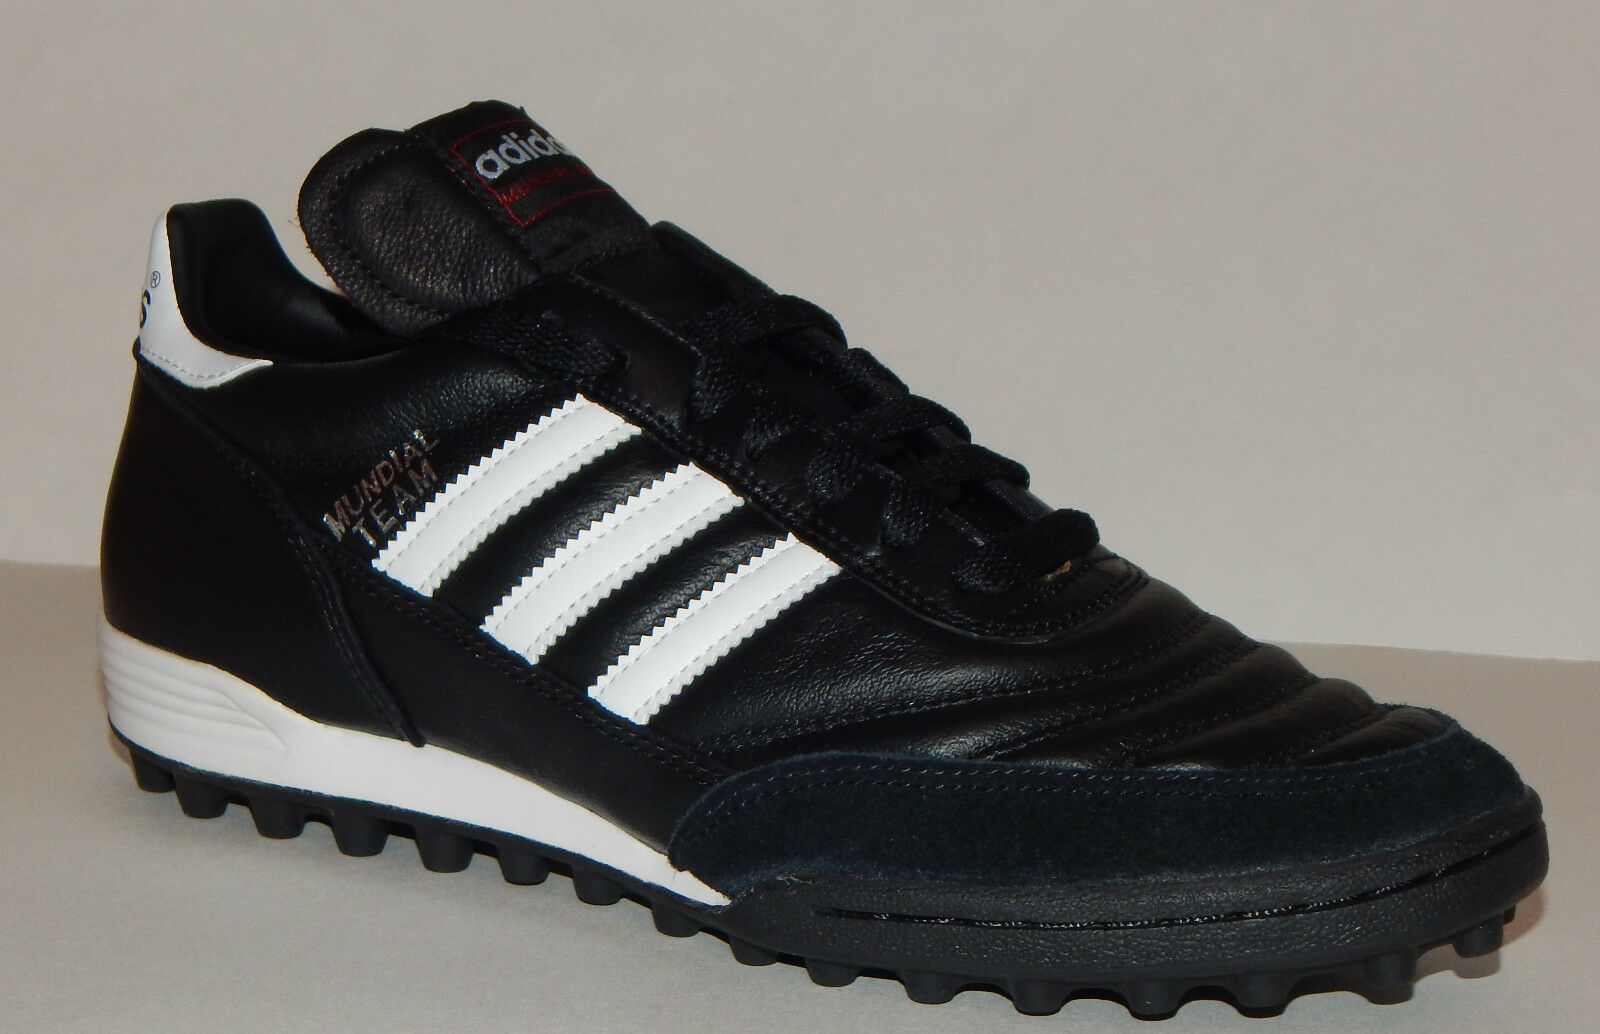 0ba7213f6f7 adidas Mundial Team Turf Soccer Shoes 019228 10.5 for sale online